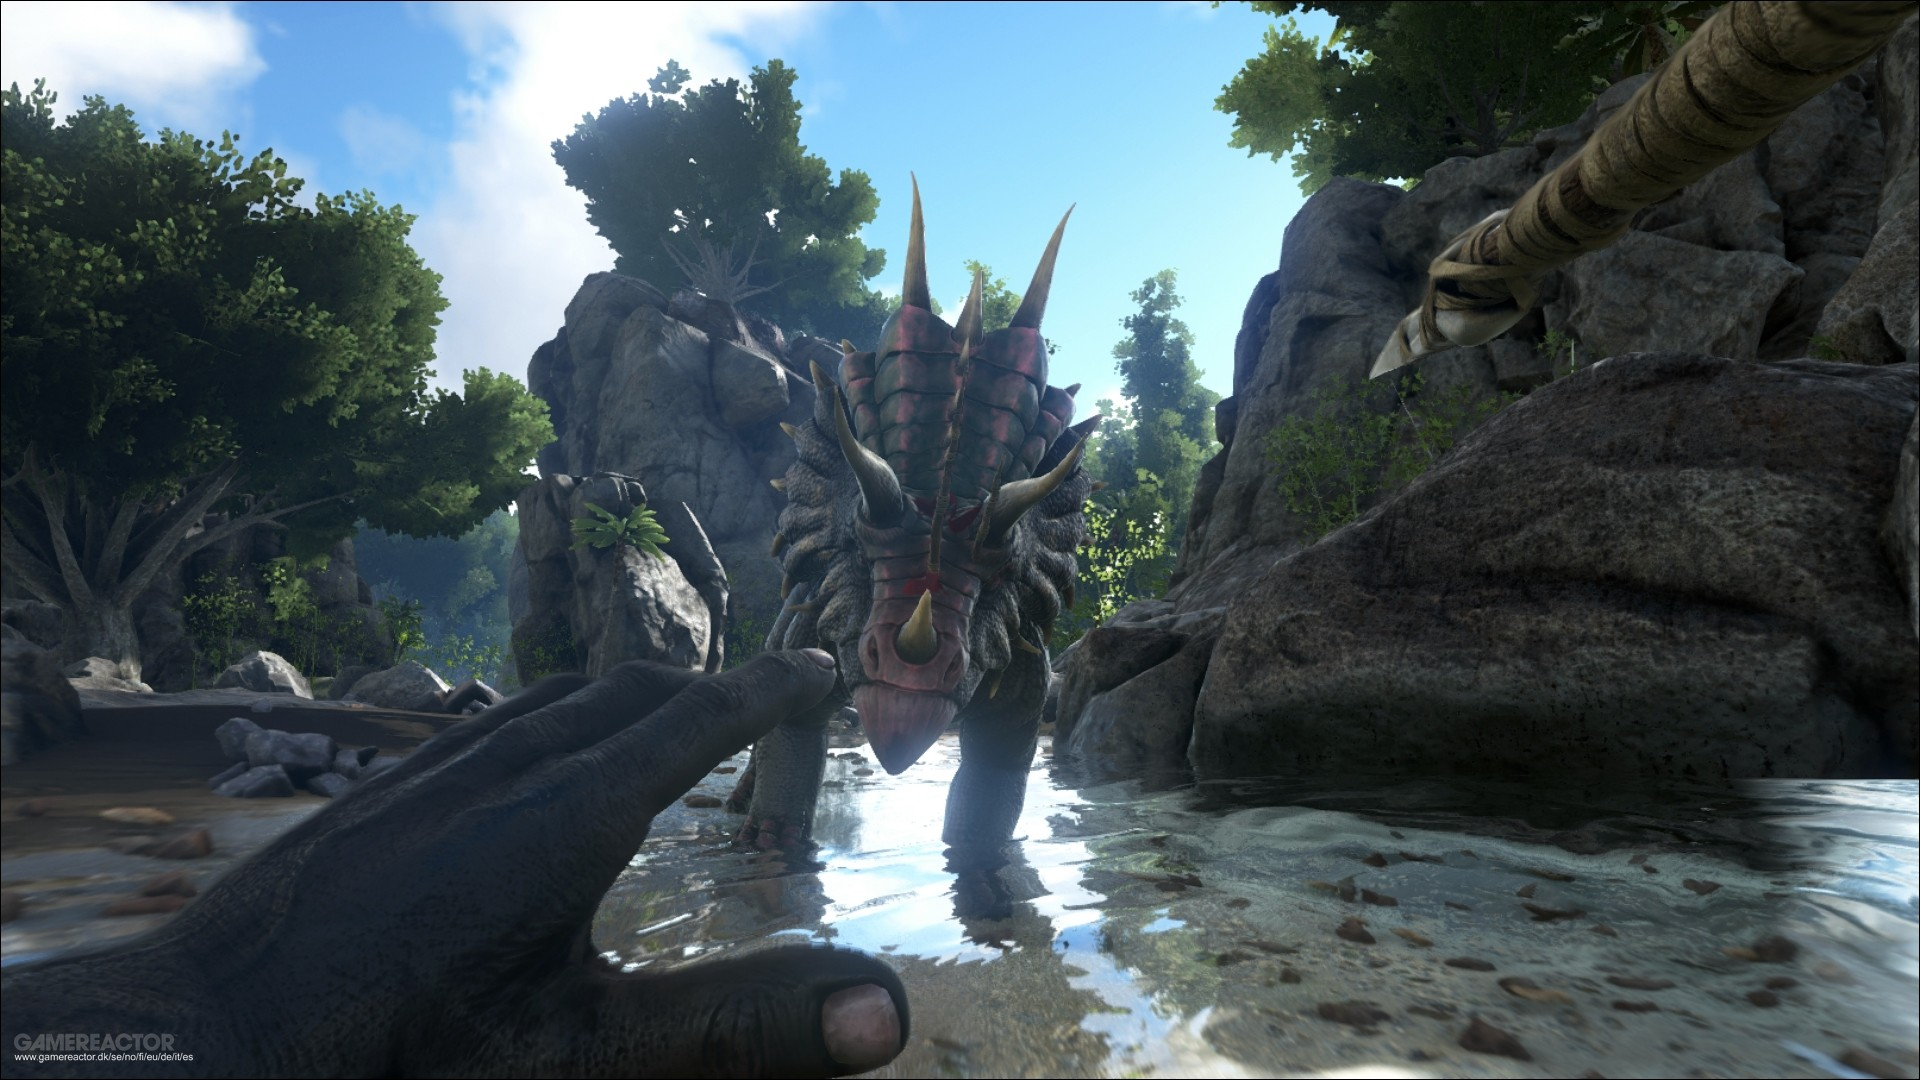 ARK: Survival Evolved Preview - Gamereactor